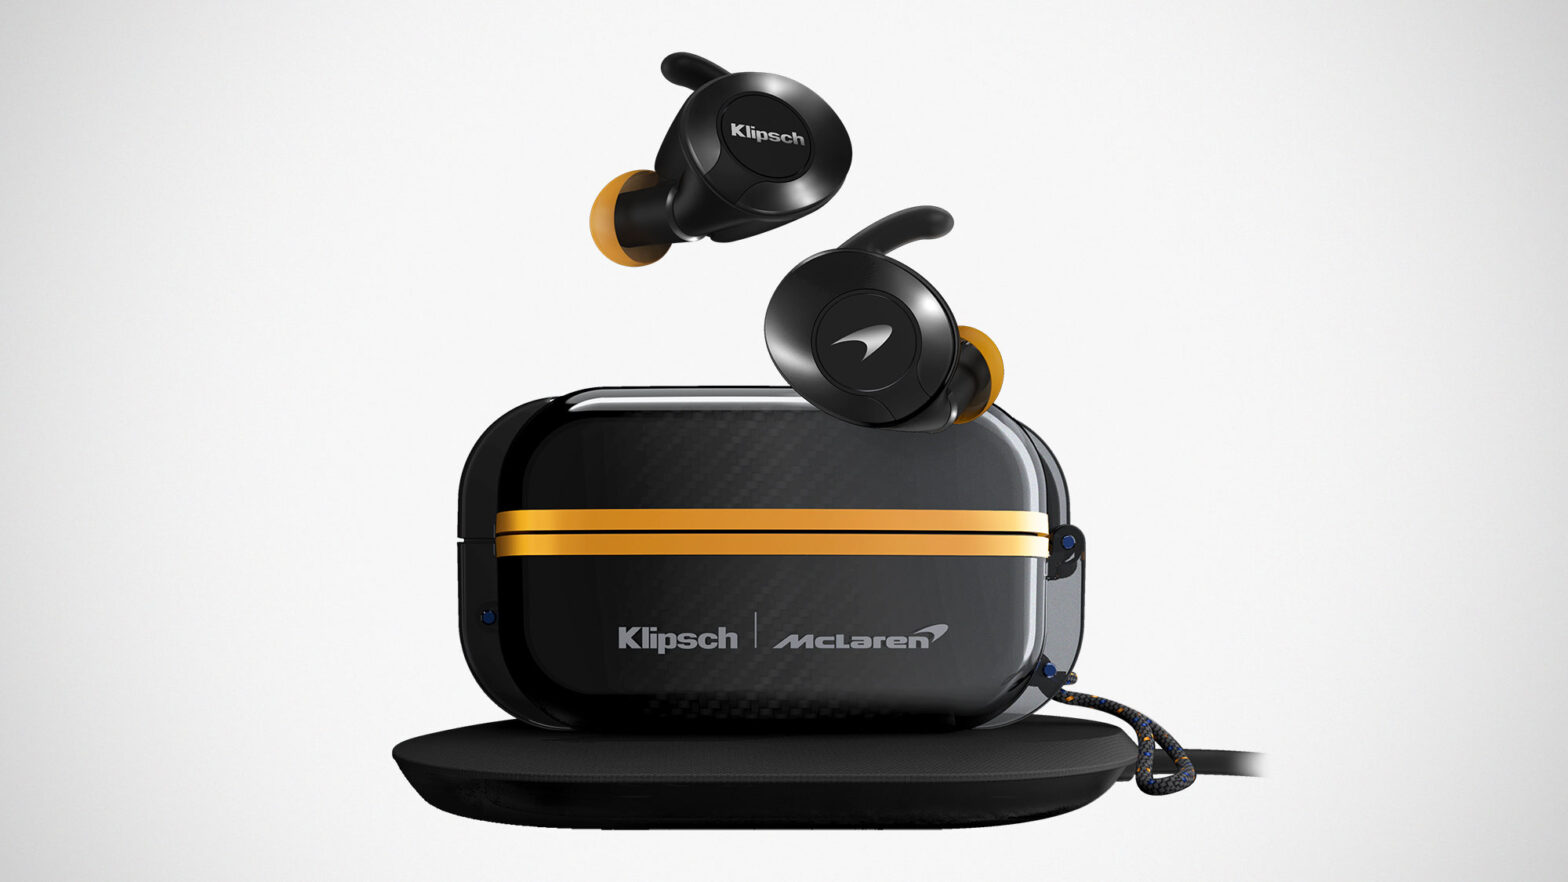 Klipsch x McLaren T5II True Wireless Earbuds